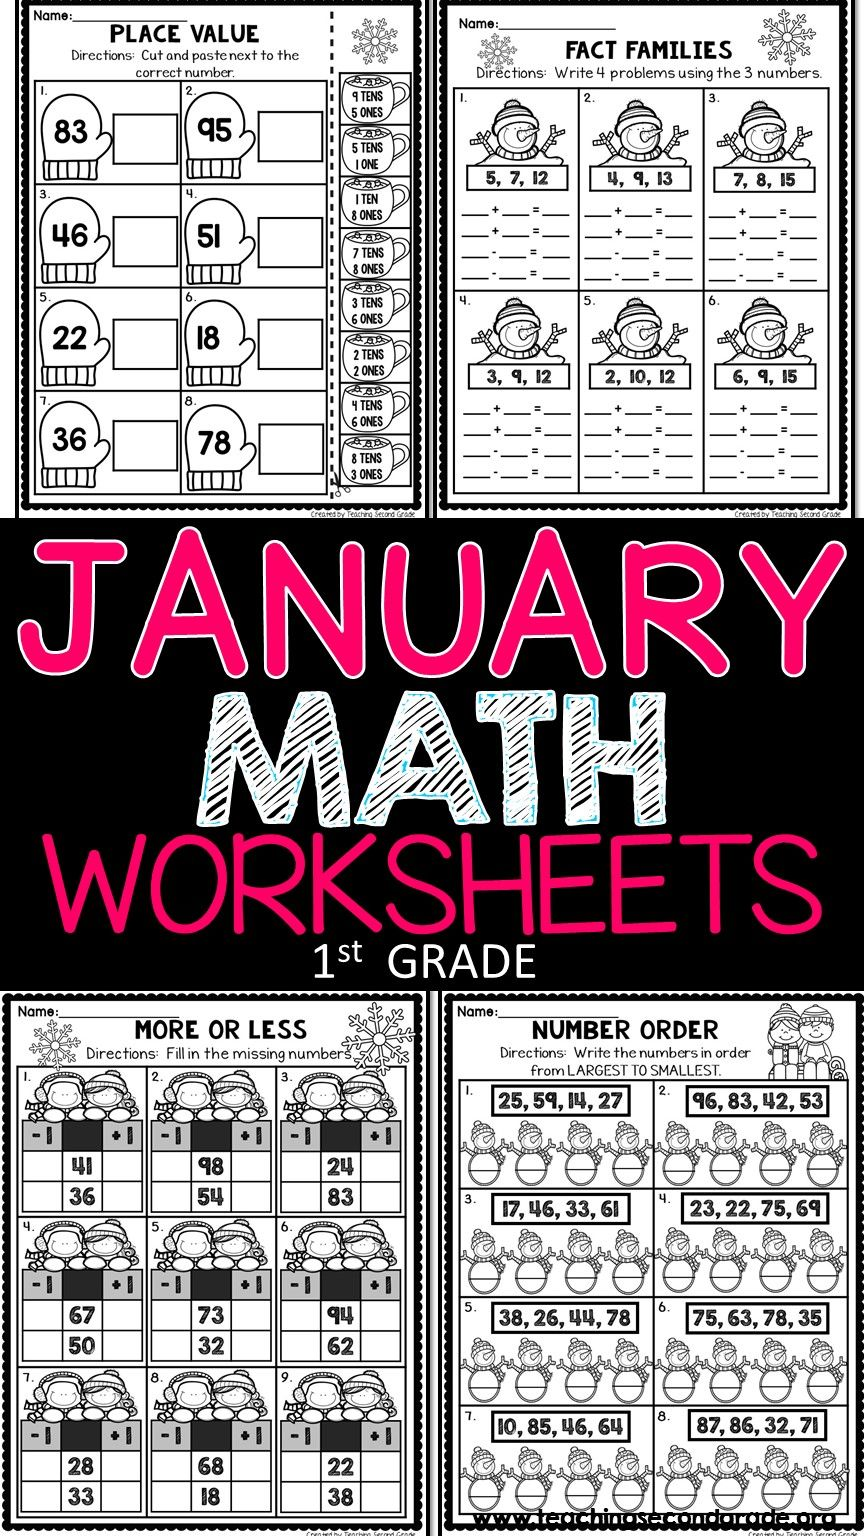 These January Math Worksheets Are A Wonderful Way To Give Your 1st Grade Students Extra Practice On The Skills Co January Math Math Worksheets First Grade Math [ 1536 x 864 Pixel ]